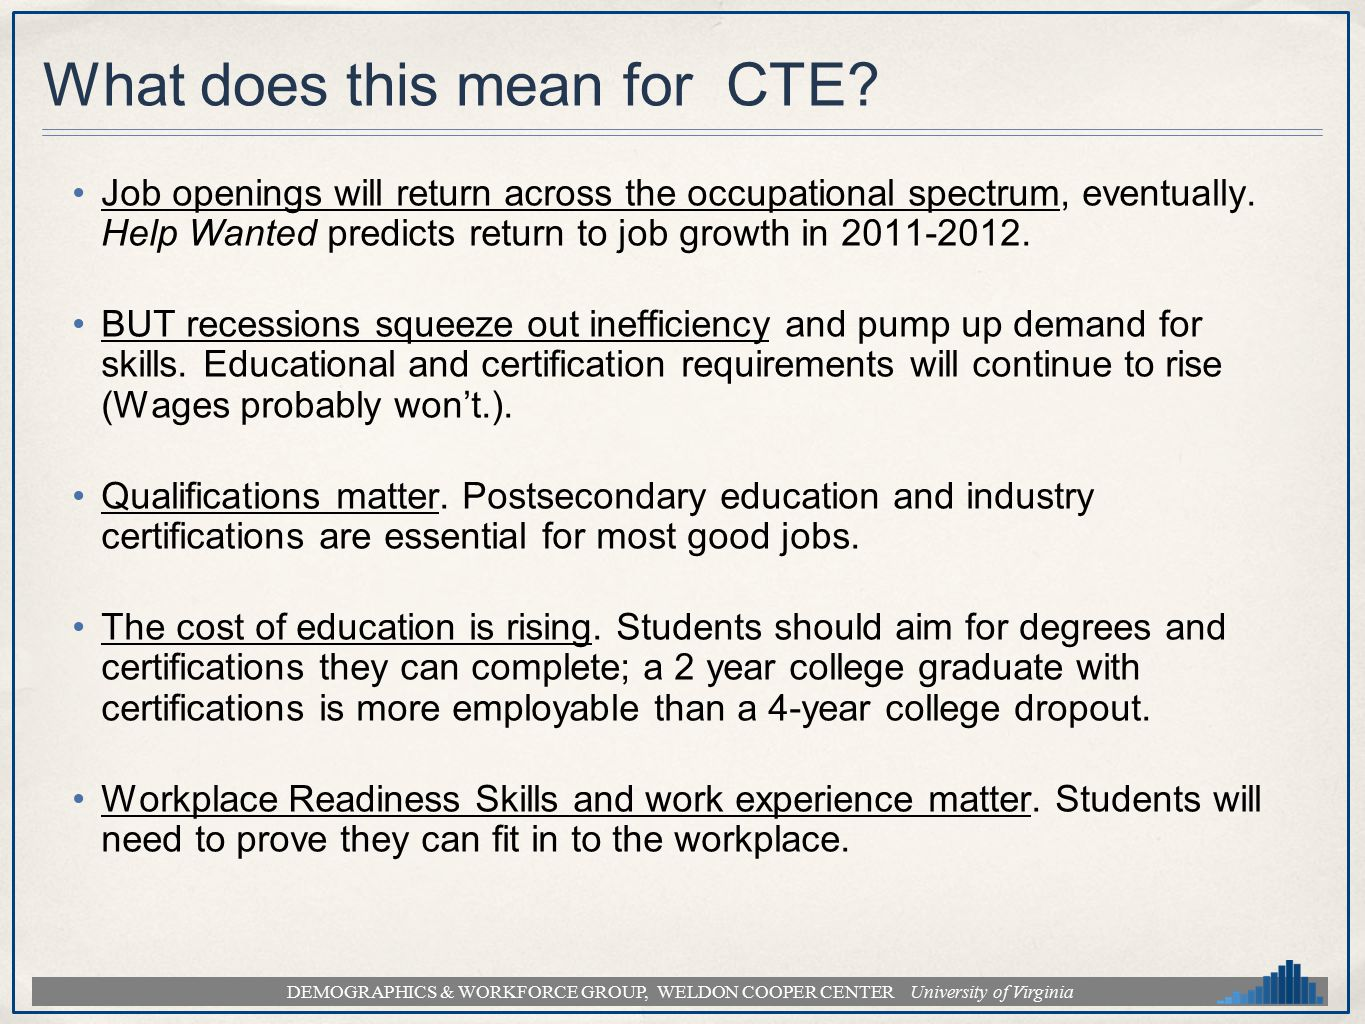 DEMOGRAPHICS & WORKFORCE GROUP, WELDON COOPER CENTER University of Virginia What does this mean for CTE? Job openings will return across the occupatio